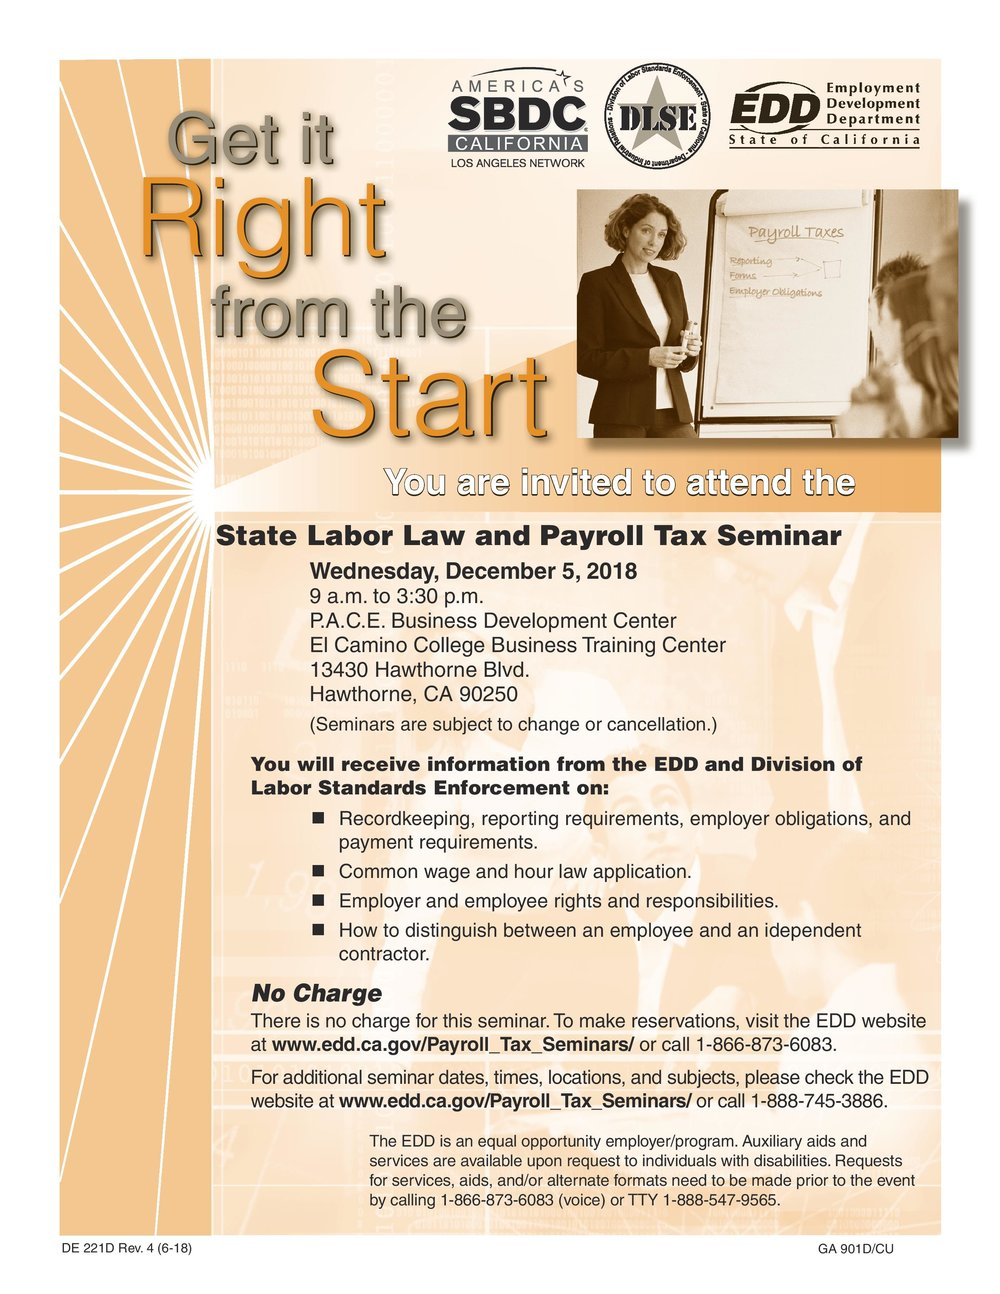 state labor law and payroll tax seminar - December 5th, 2018